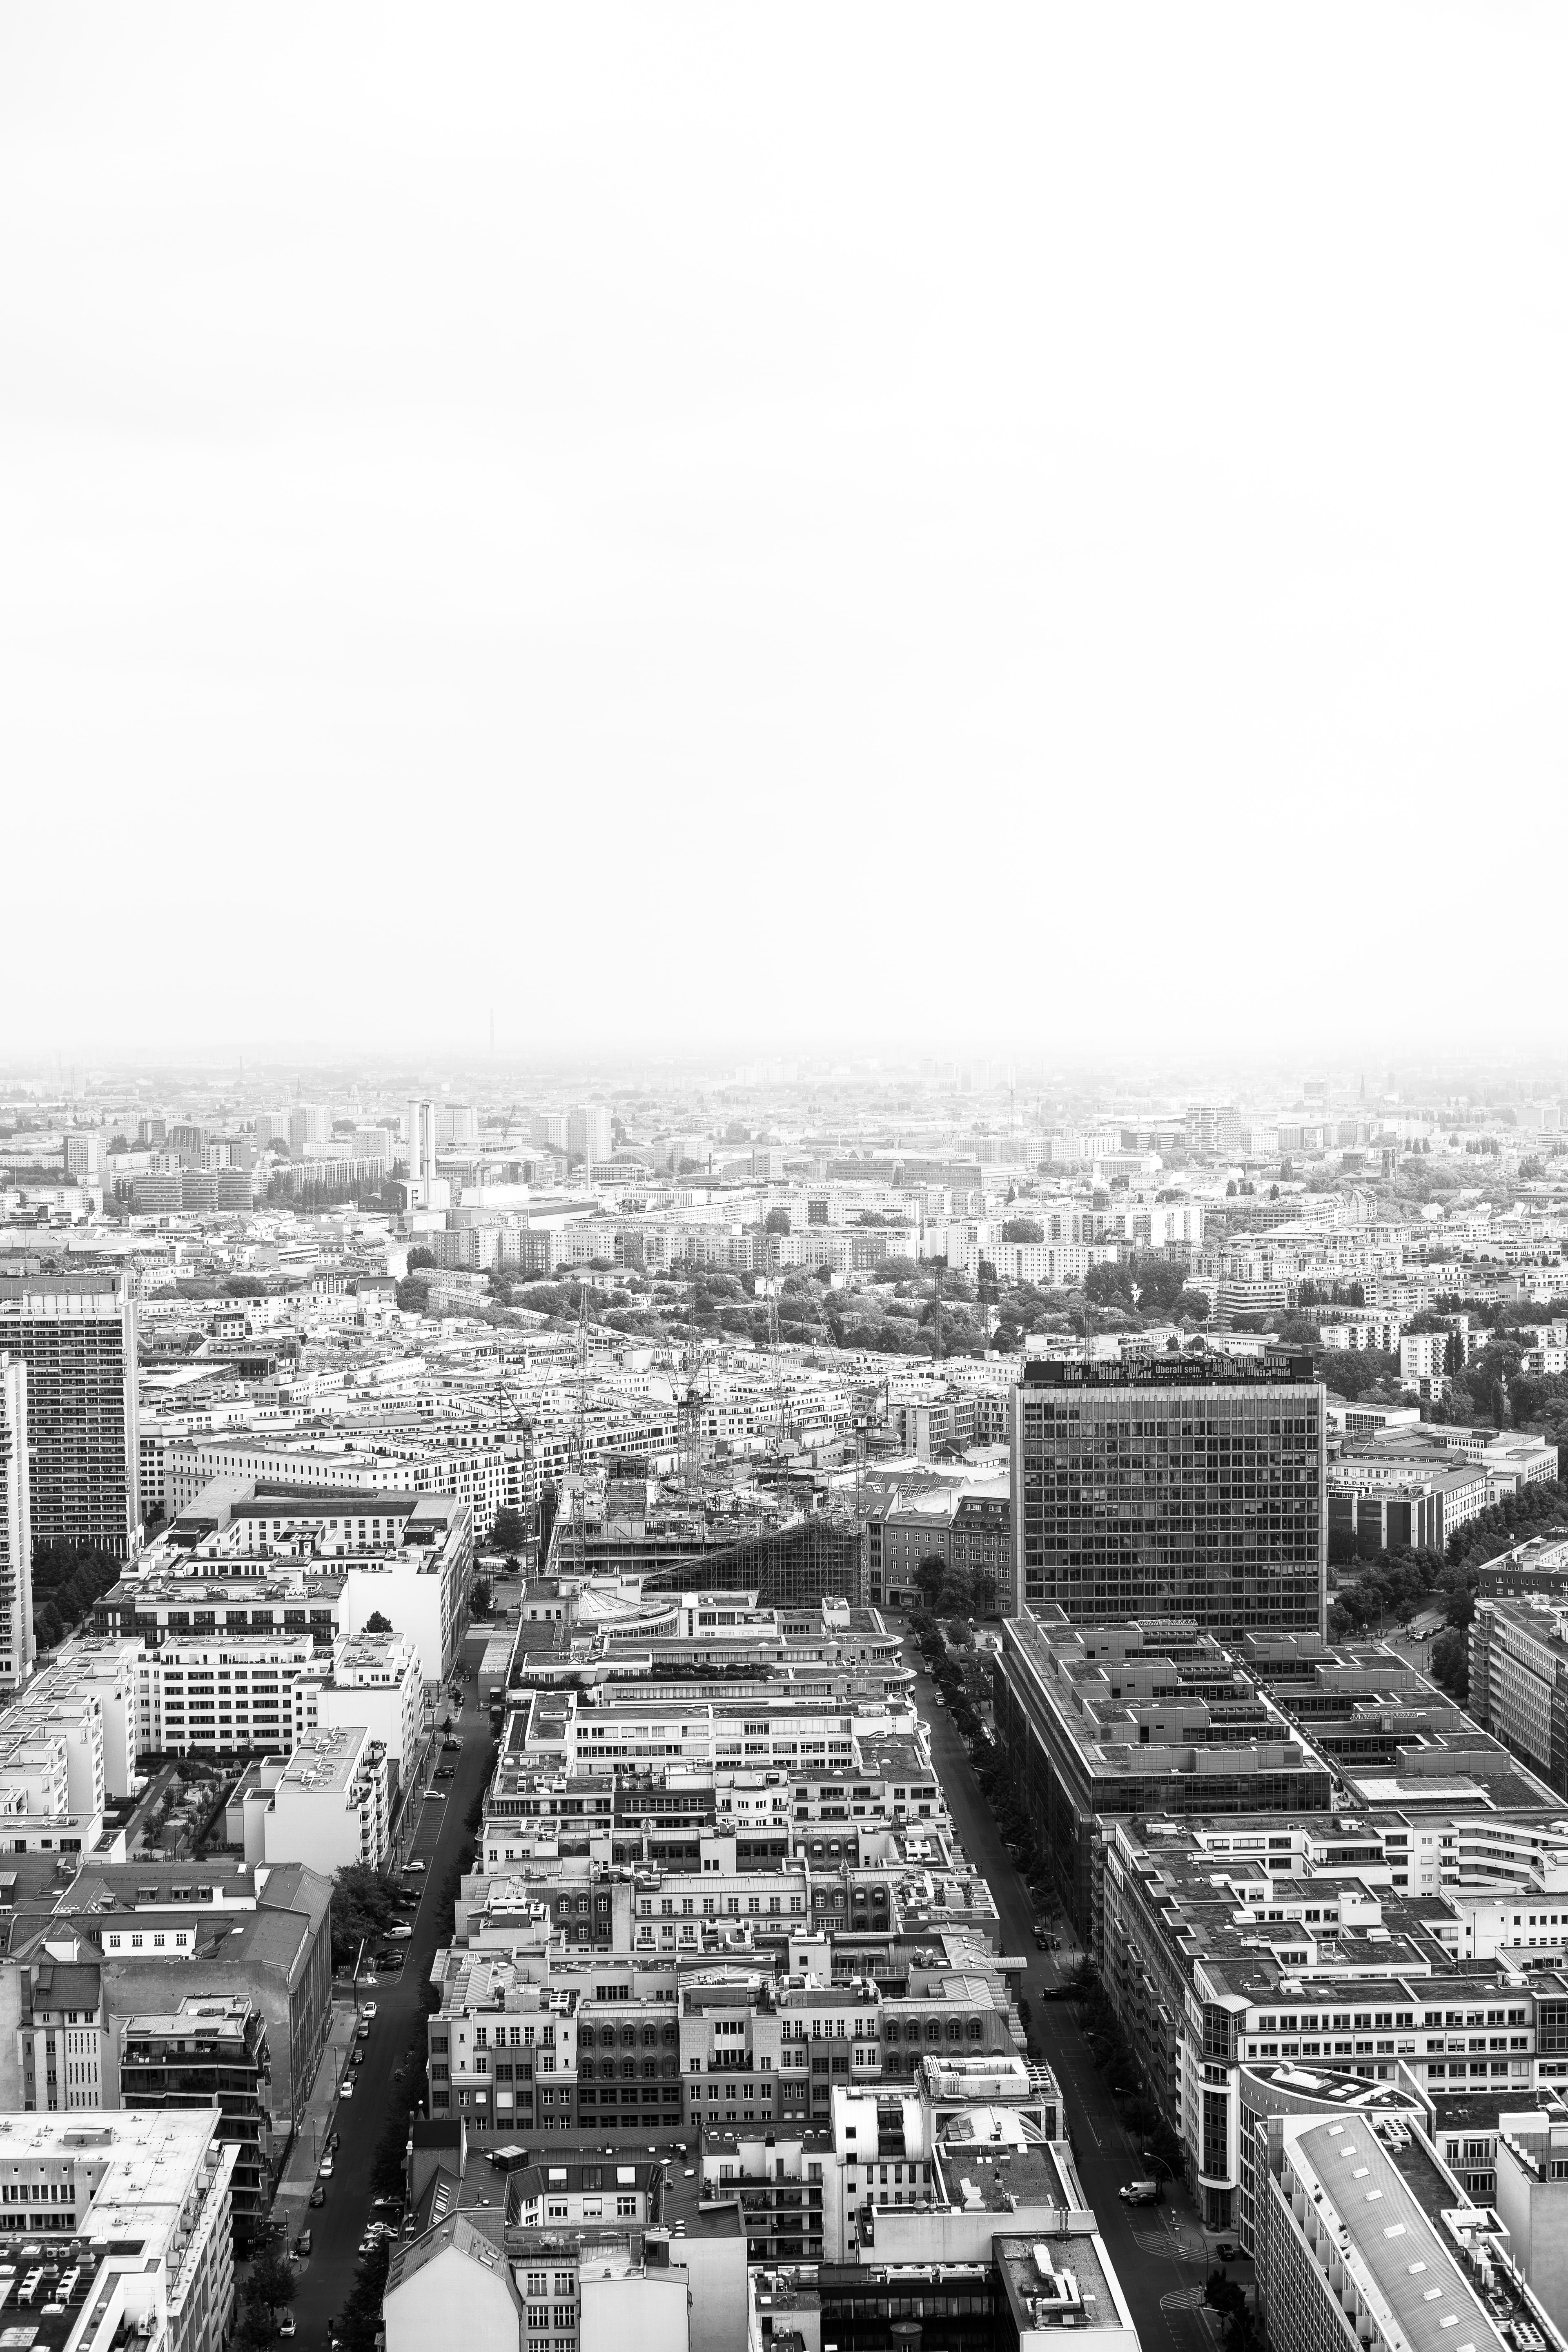 grayscale aerial photo of buildings